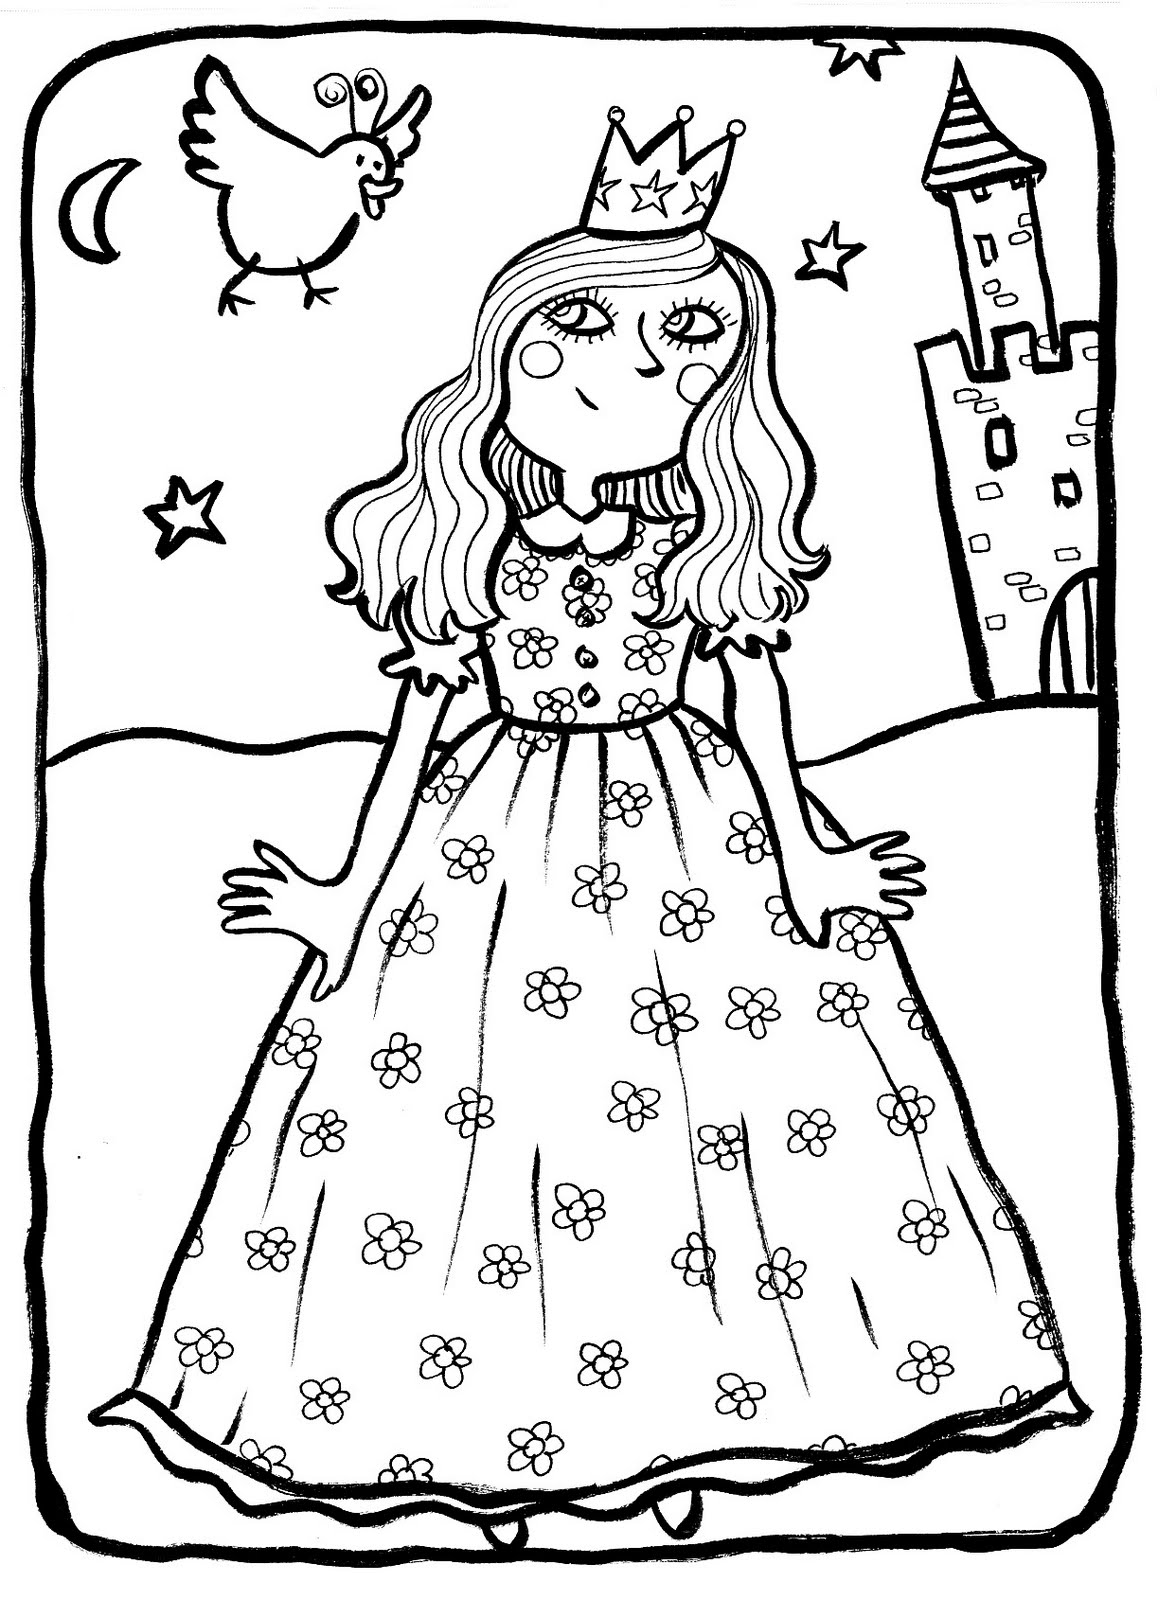 Princesse 3 coloriage princesses coloriages pour enfants - Colriage princesse ...